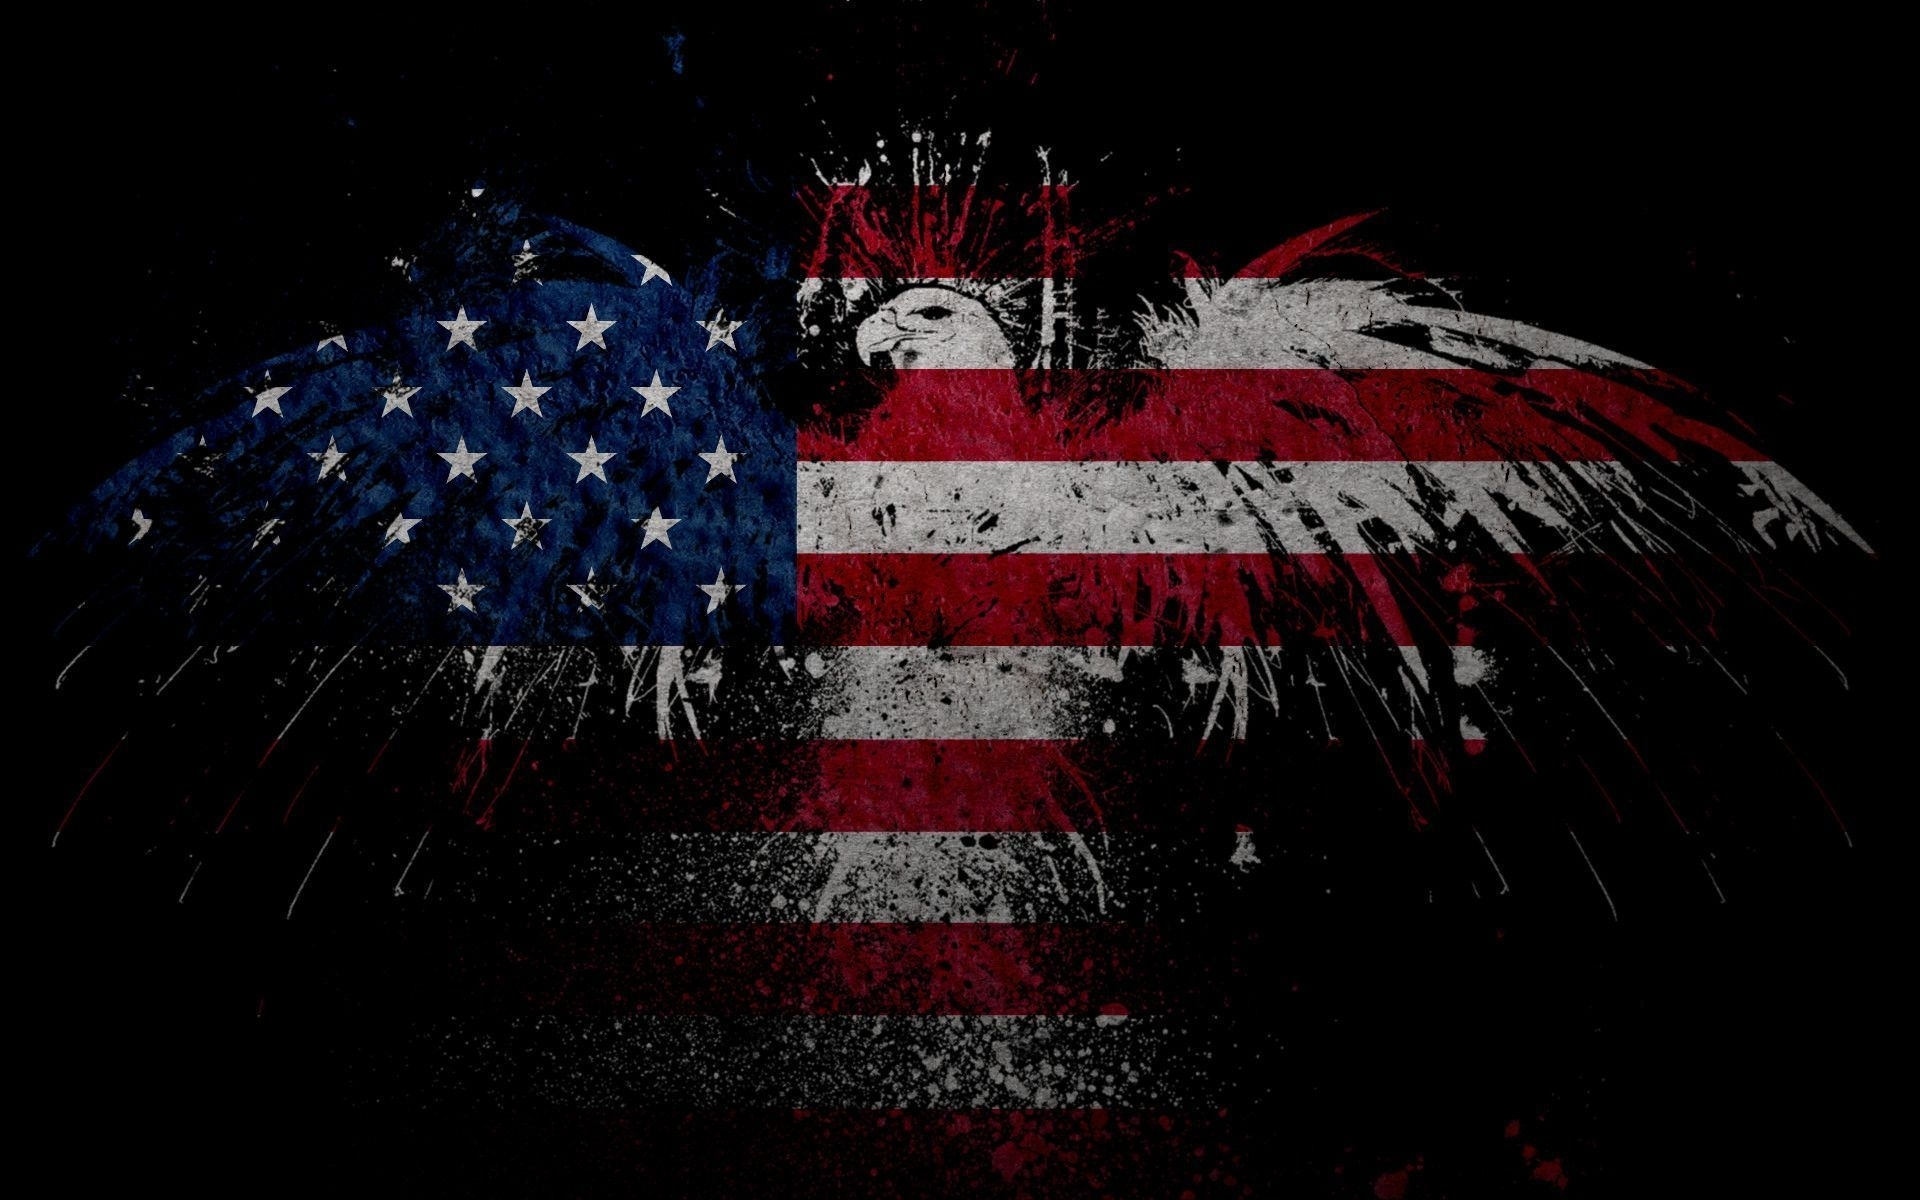 10 Latest Awesome American Flag Wallpaper FULL HD 1080p For PC Background